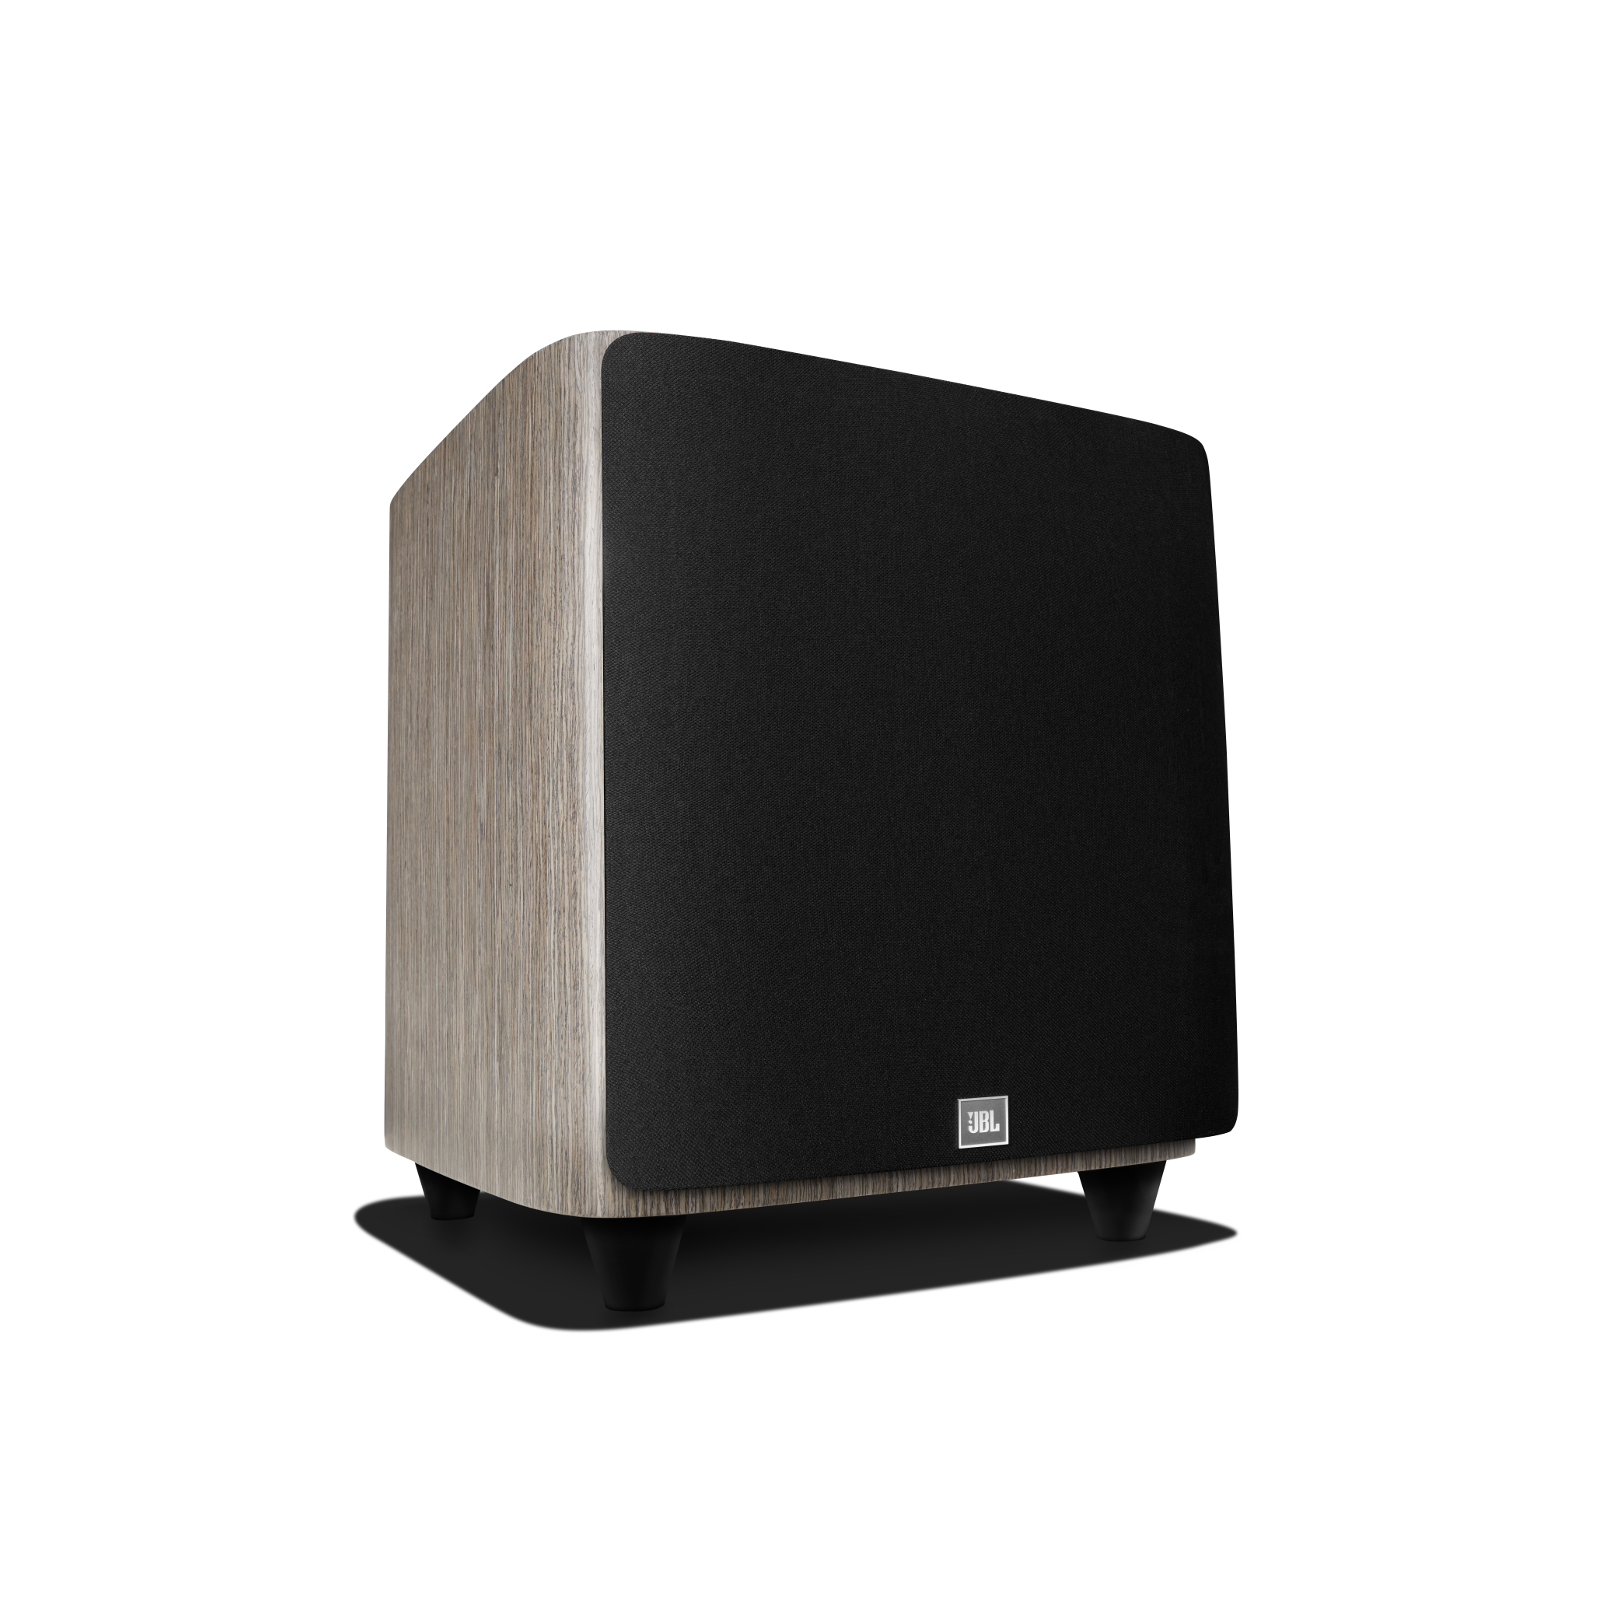 HDI-1200P - Grey Oak - 12-inch (300mm) 1000W Powered Subwoofer - Front